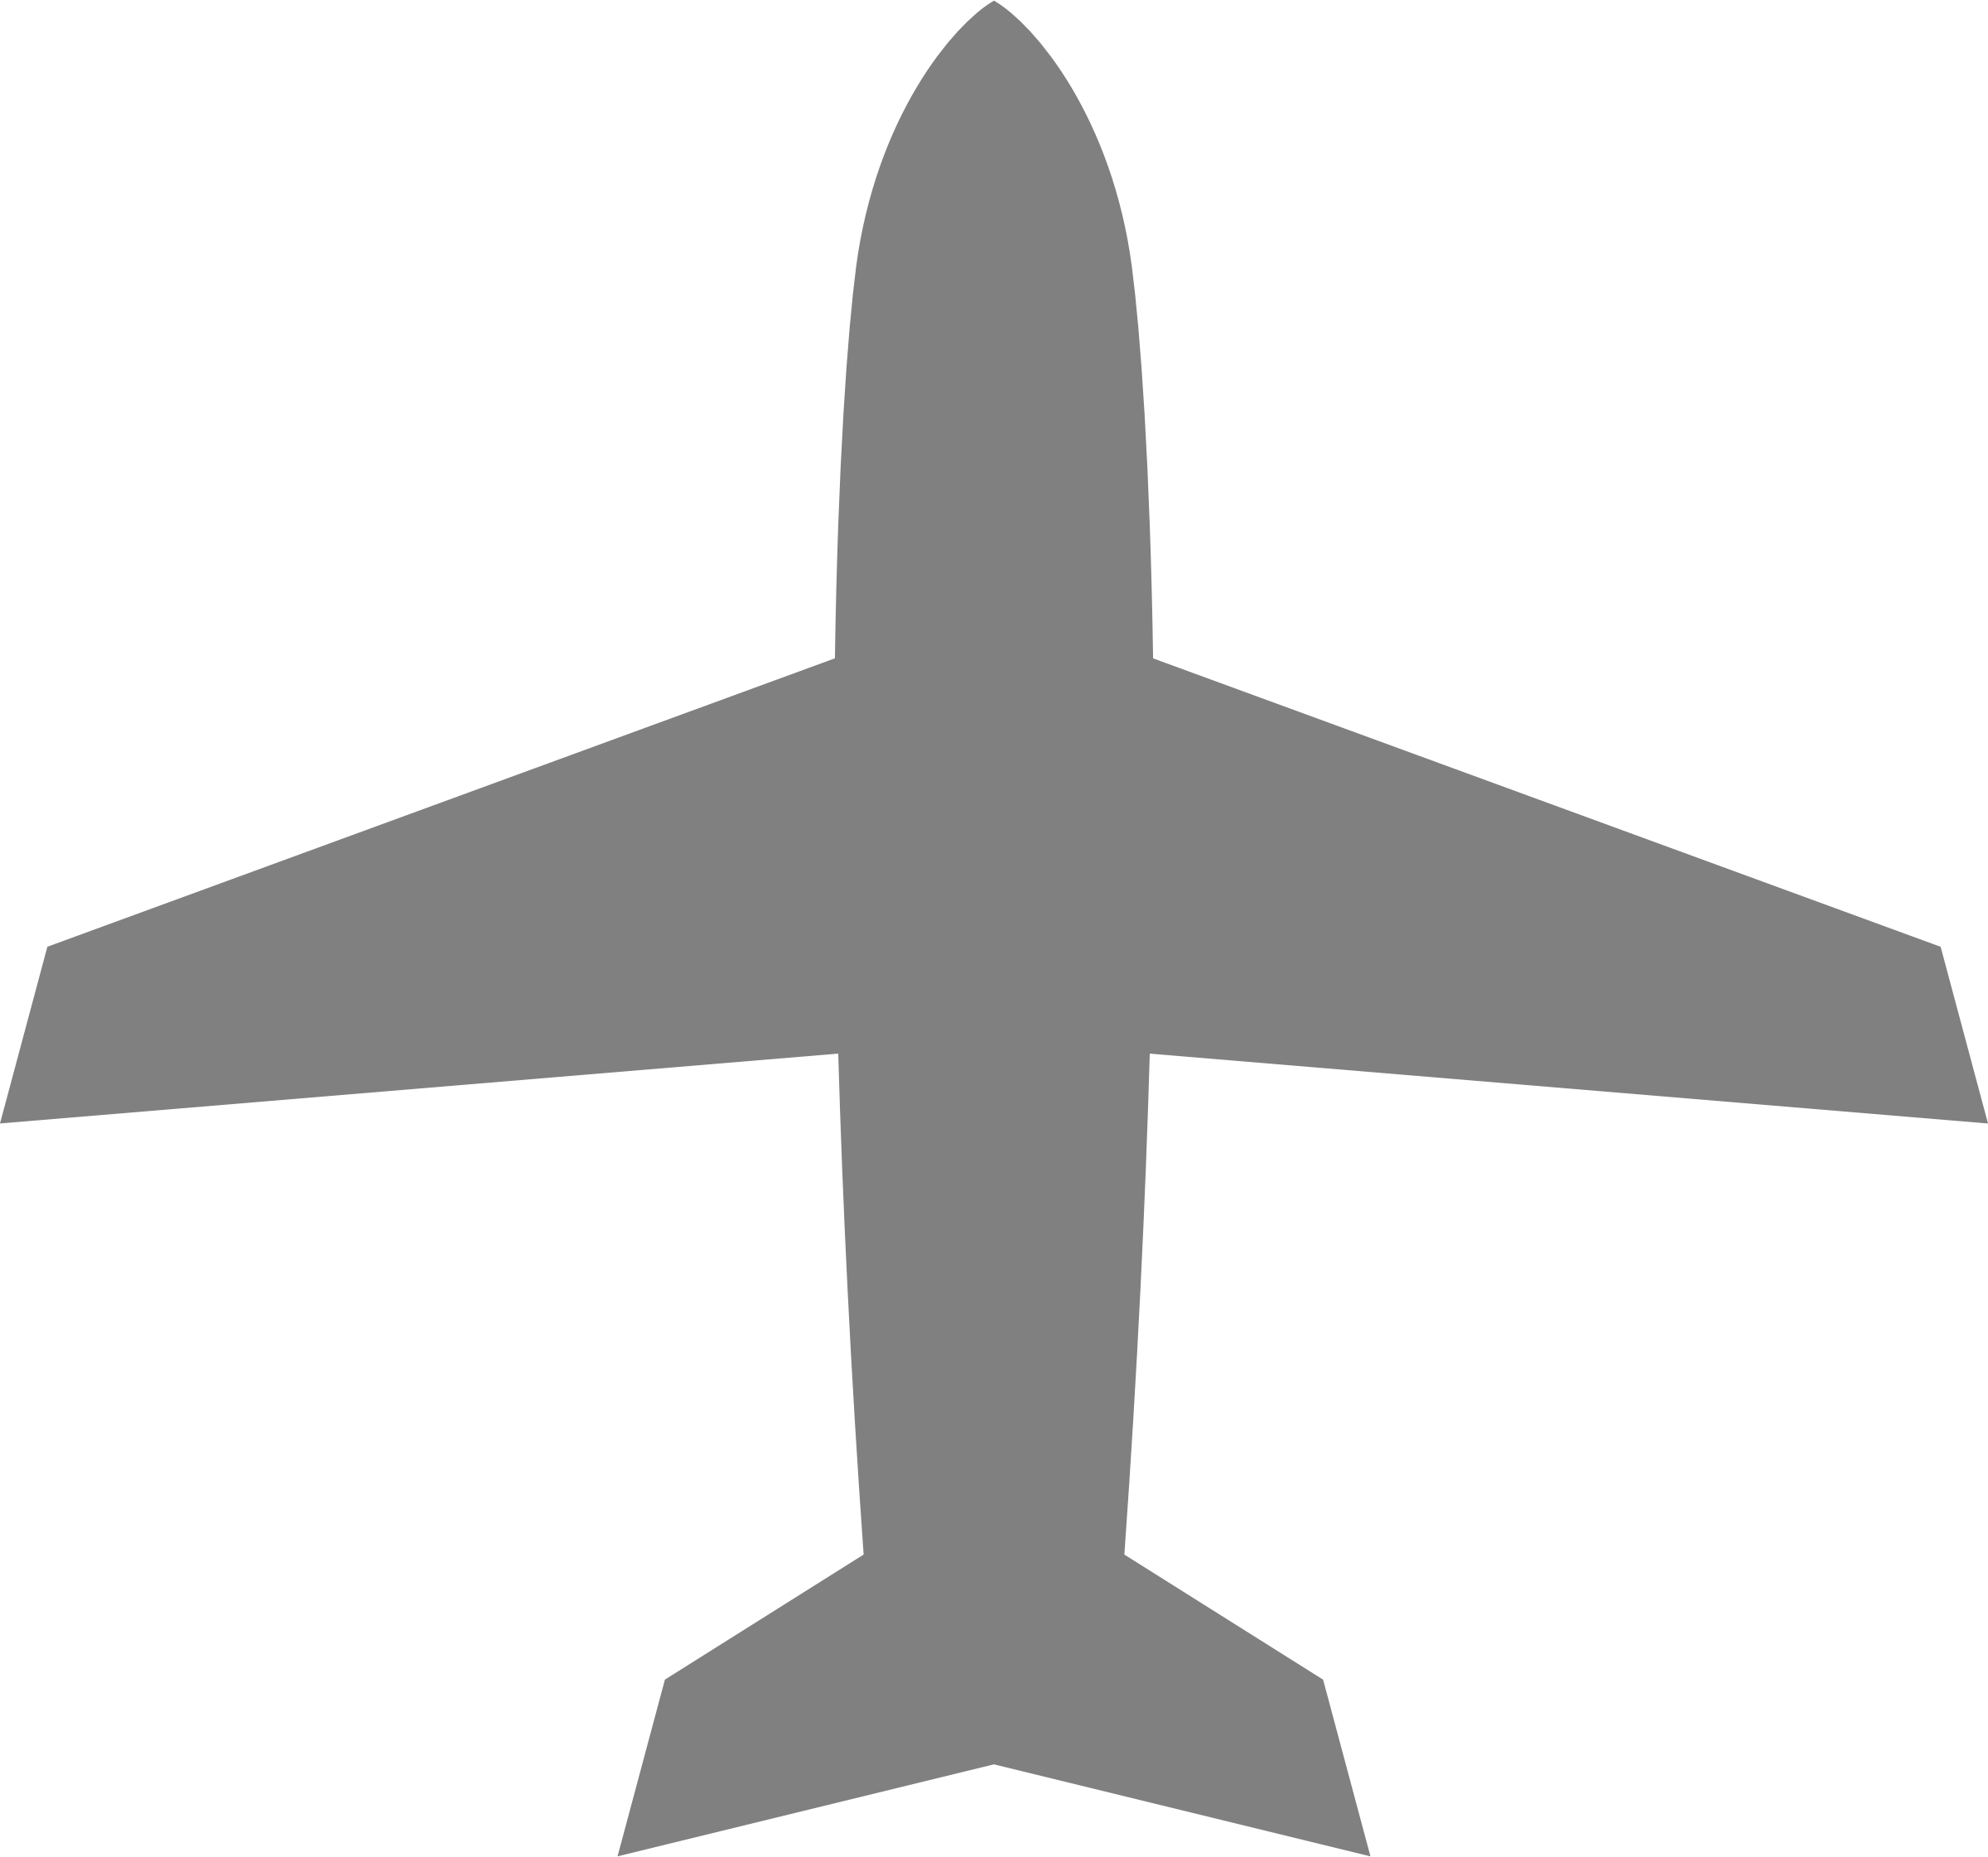 Plane big image png. Clipart airplane love